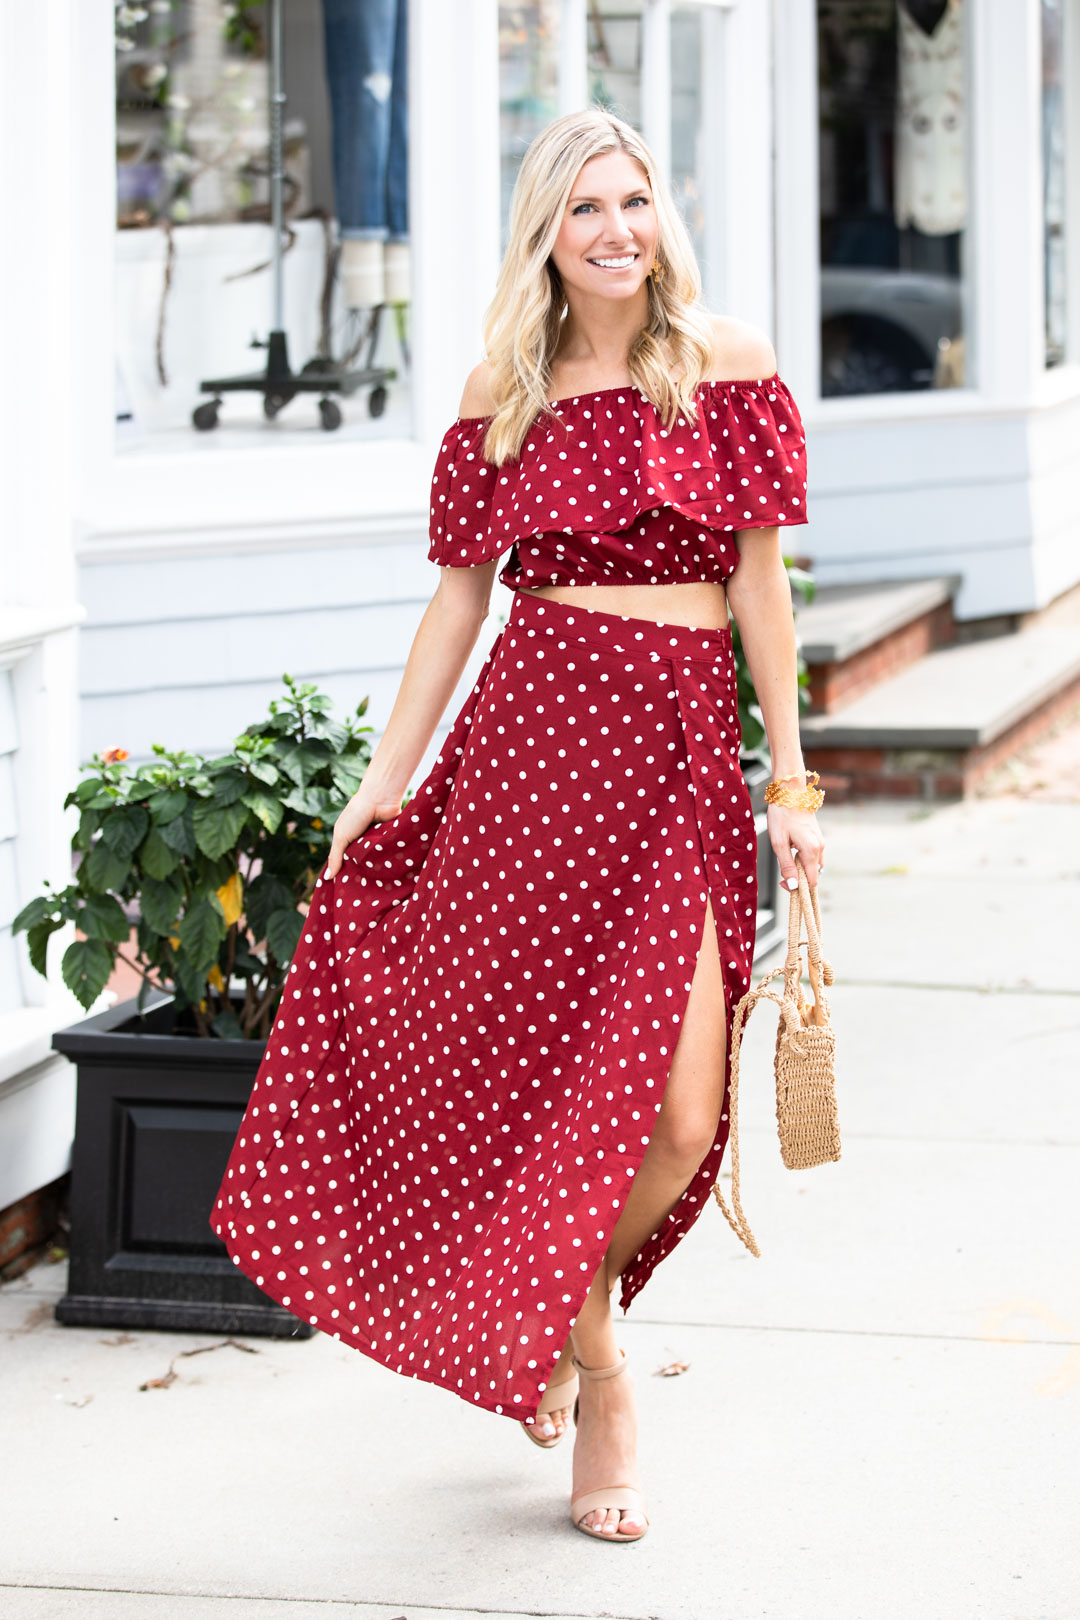 Shein Burgundy Polka Dot Maxi Skirt and Crop Top